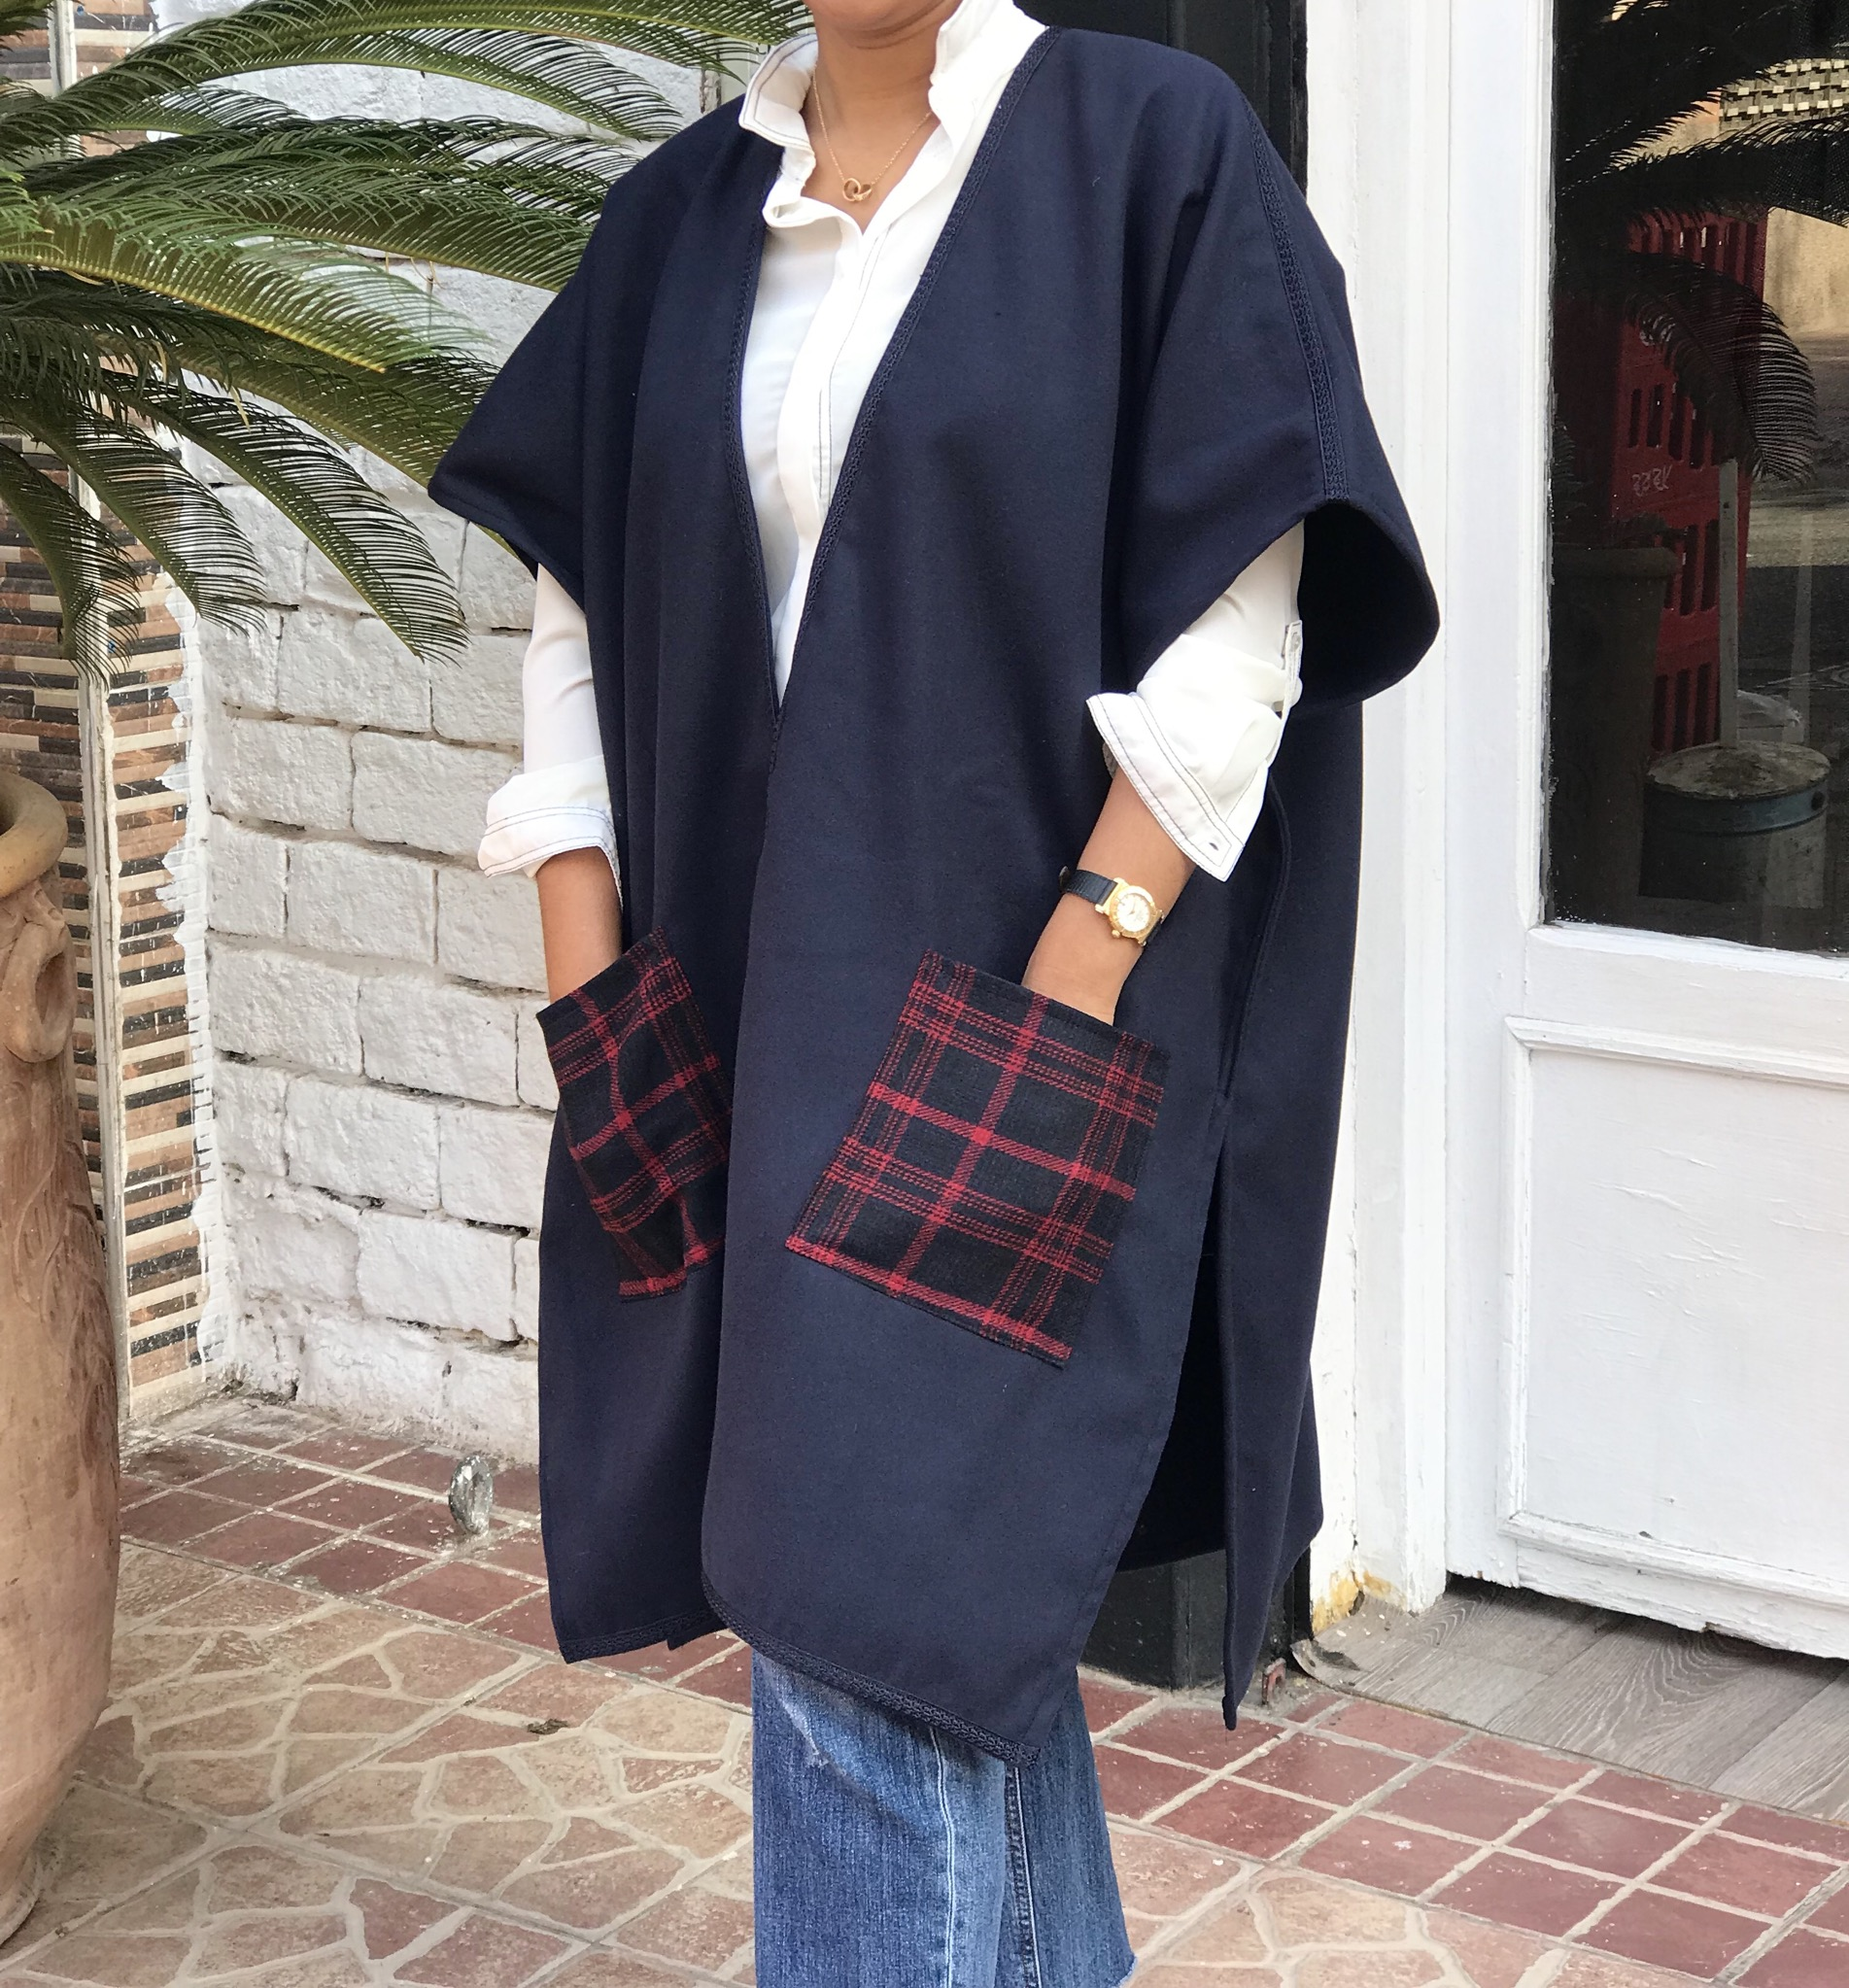 Kimono cashemire blue navy with pockets red blue